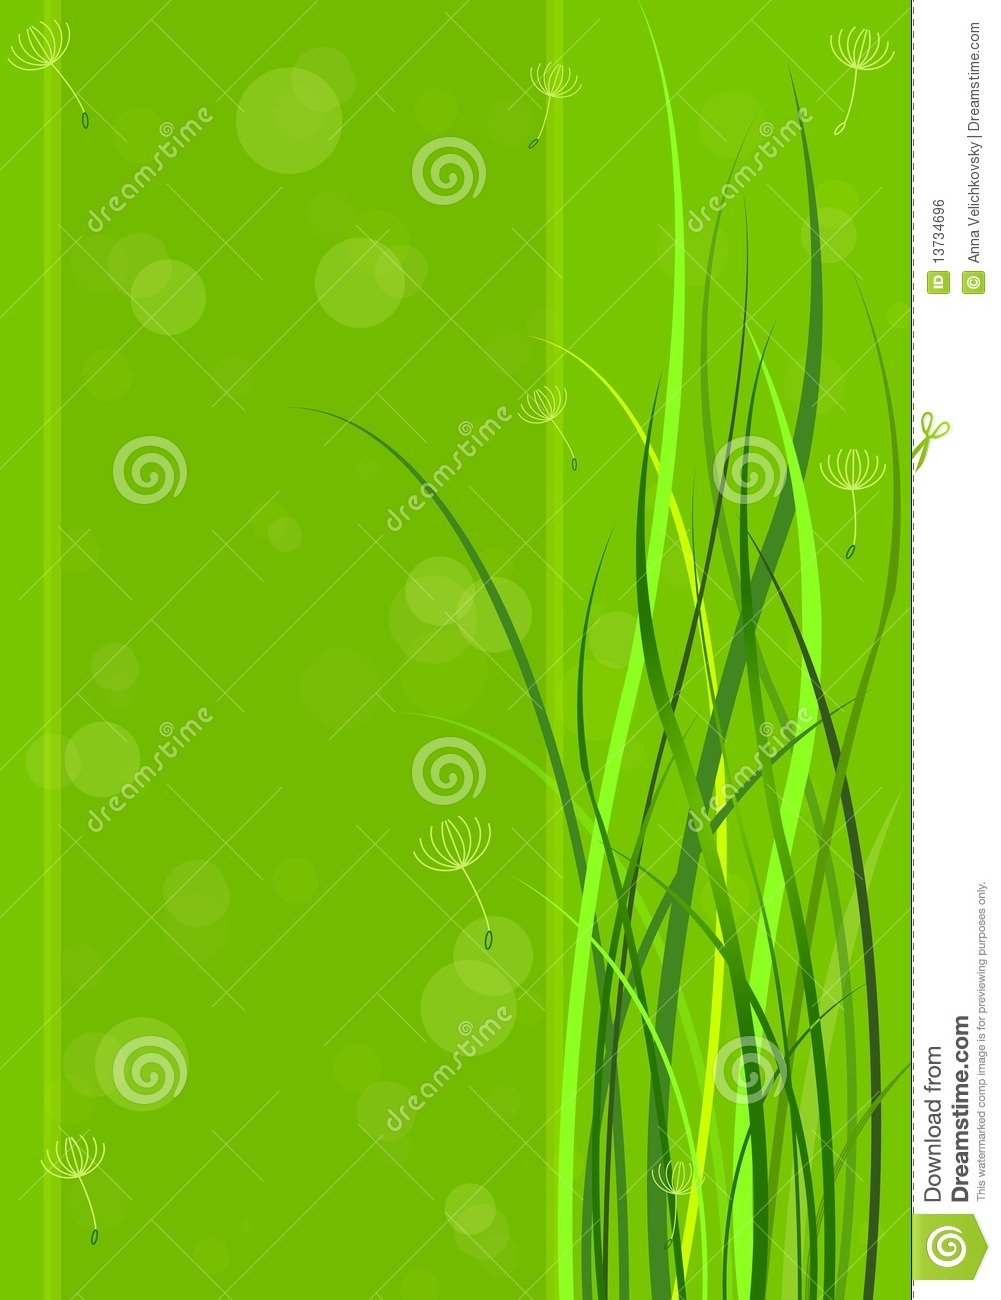 green spring background - photo #28